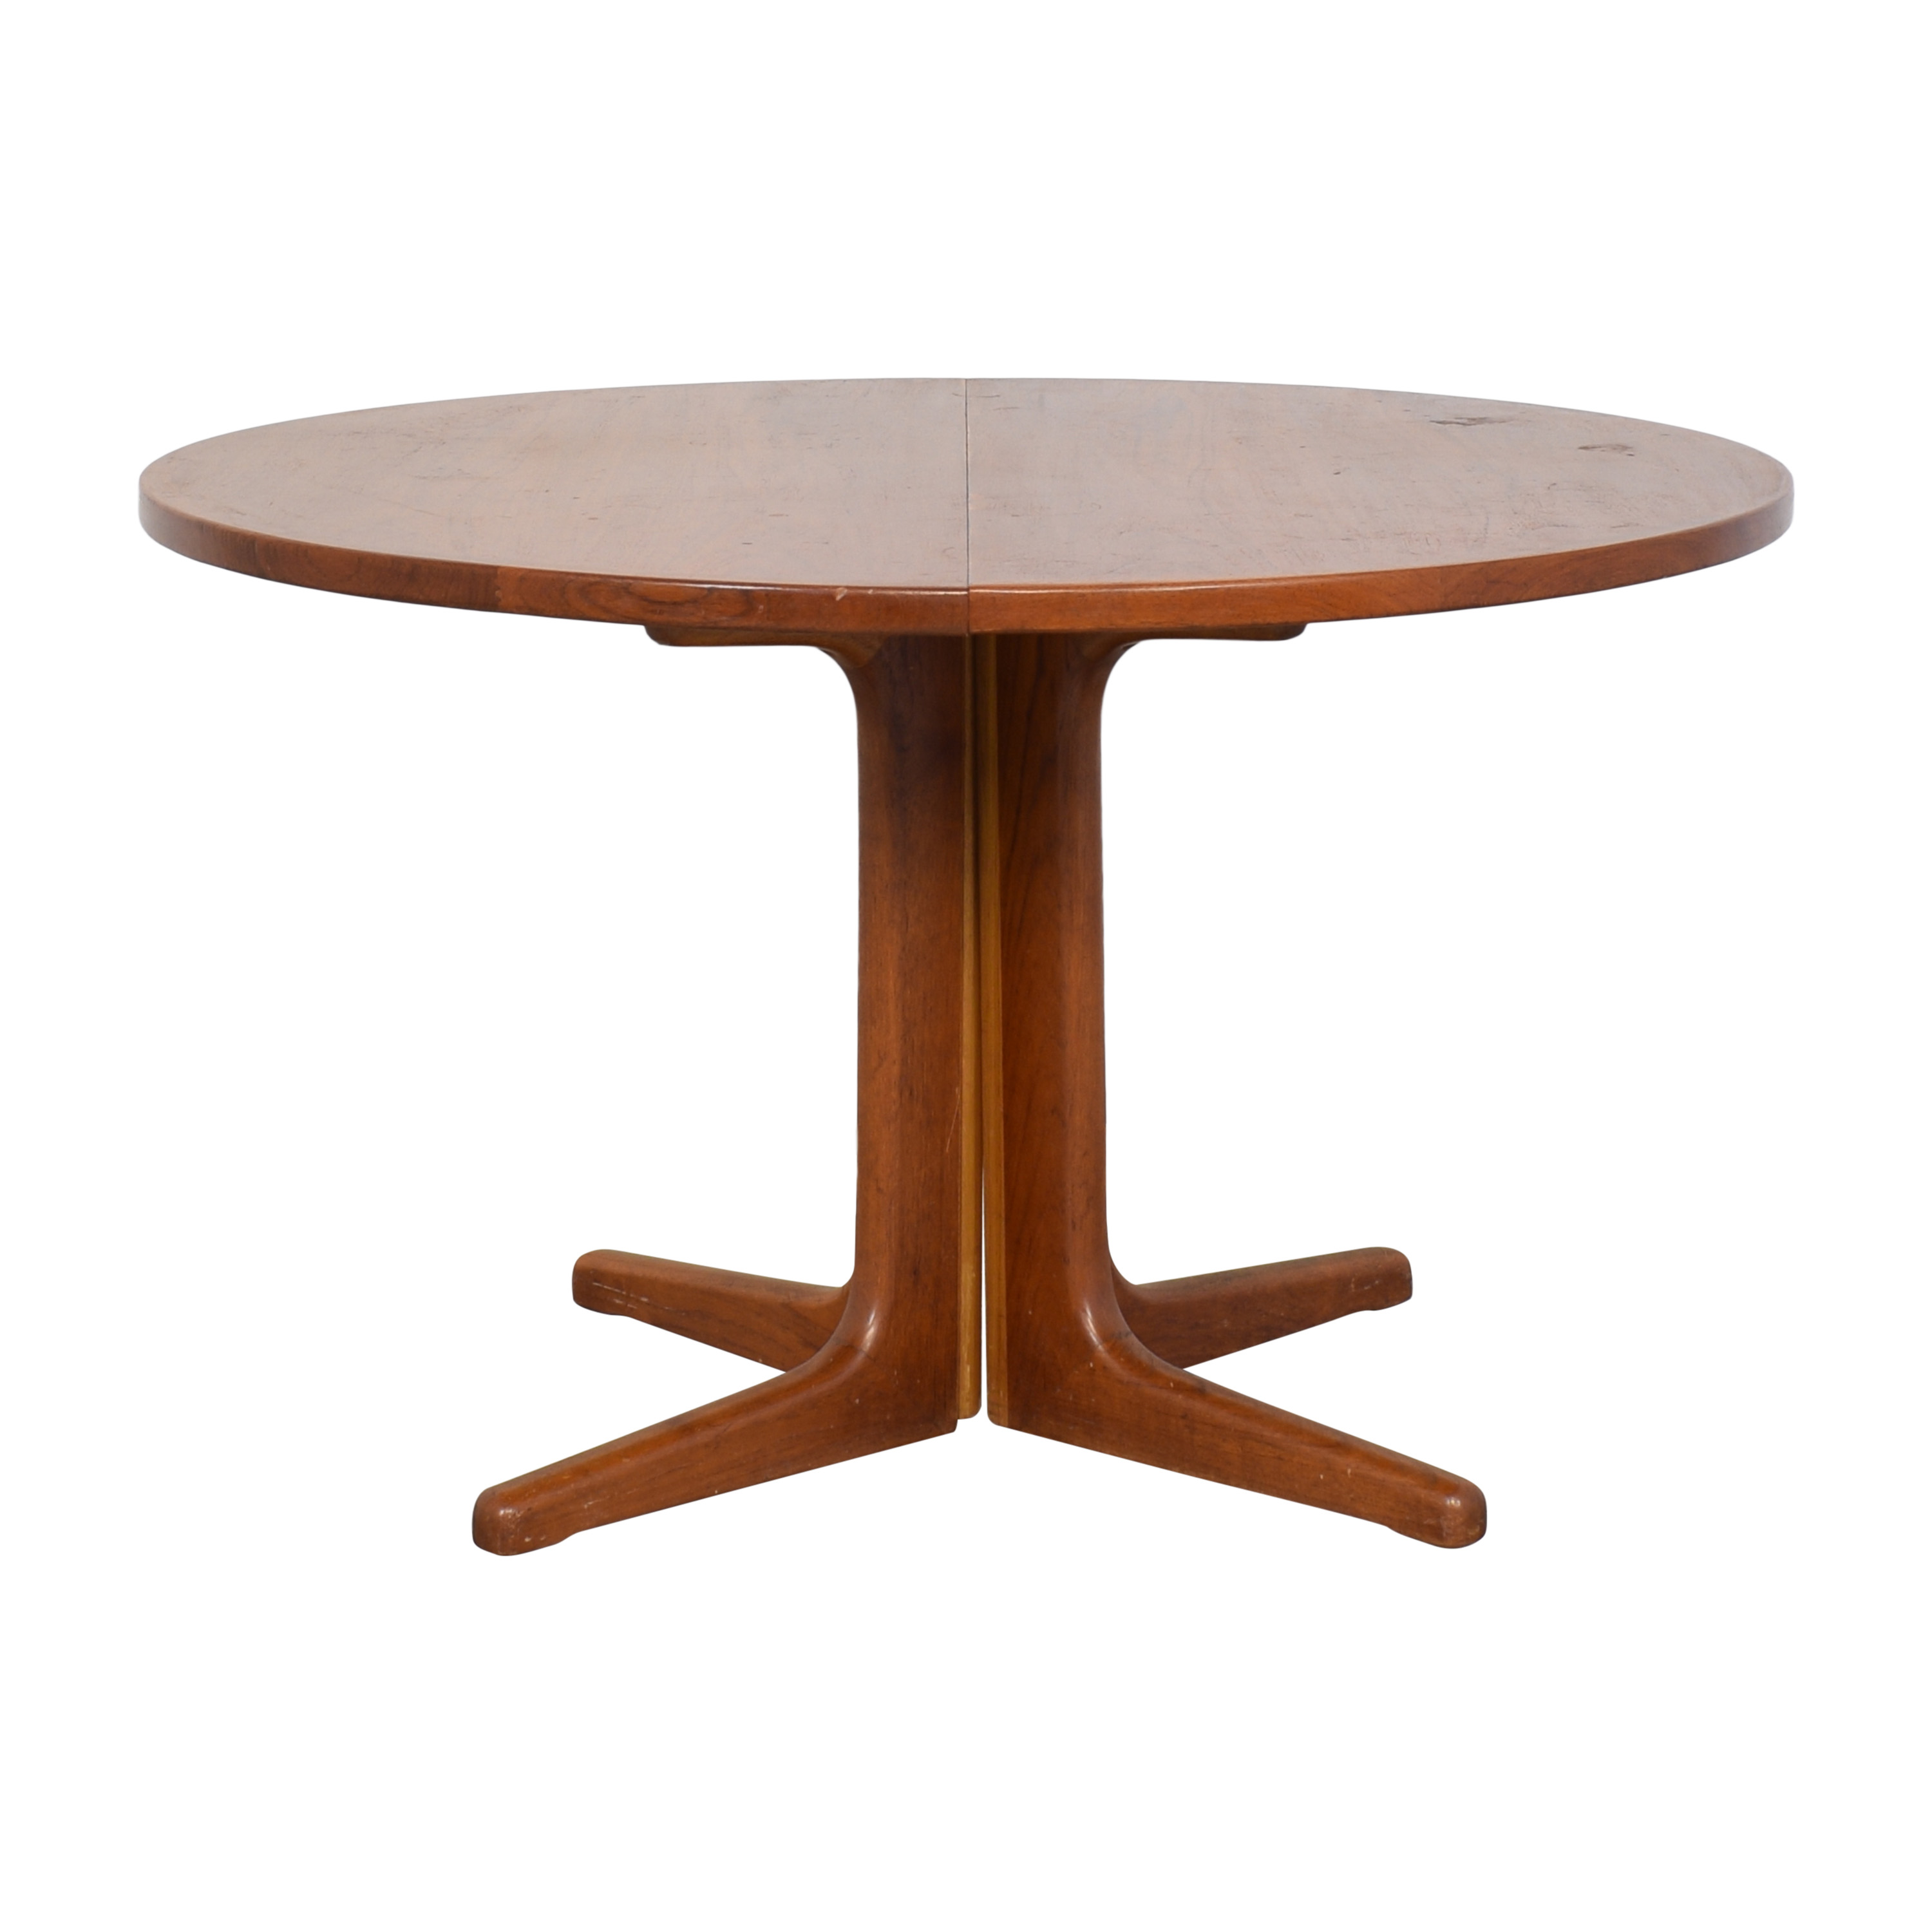 Diethelm Scanstyle Extendable Mid Century Dining Table sale